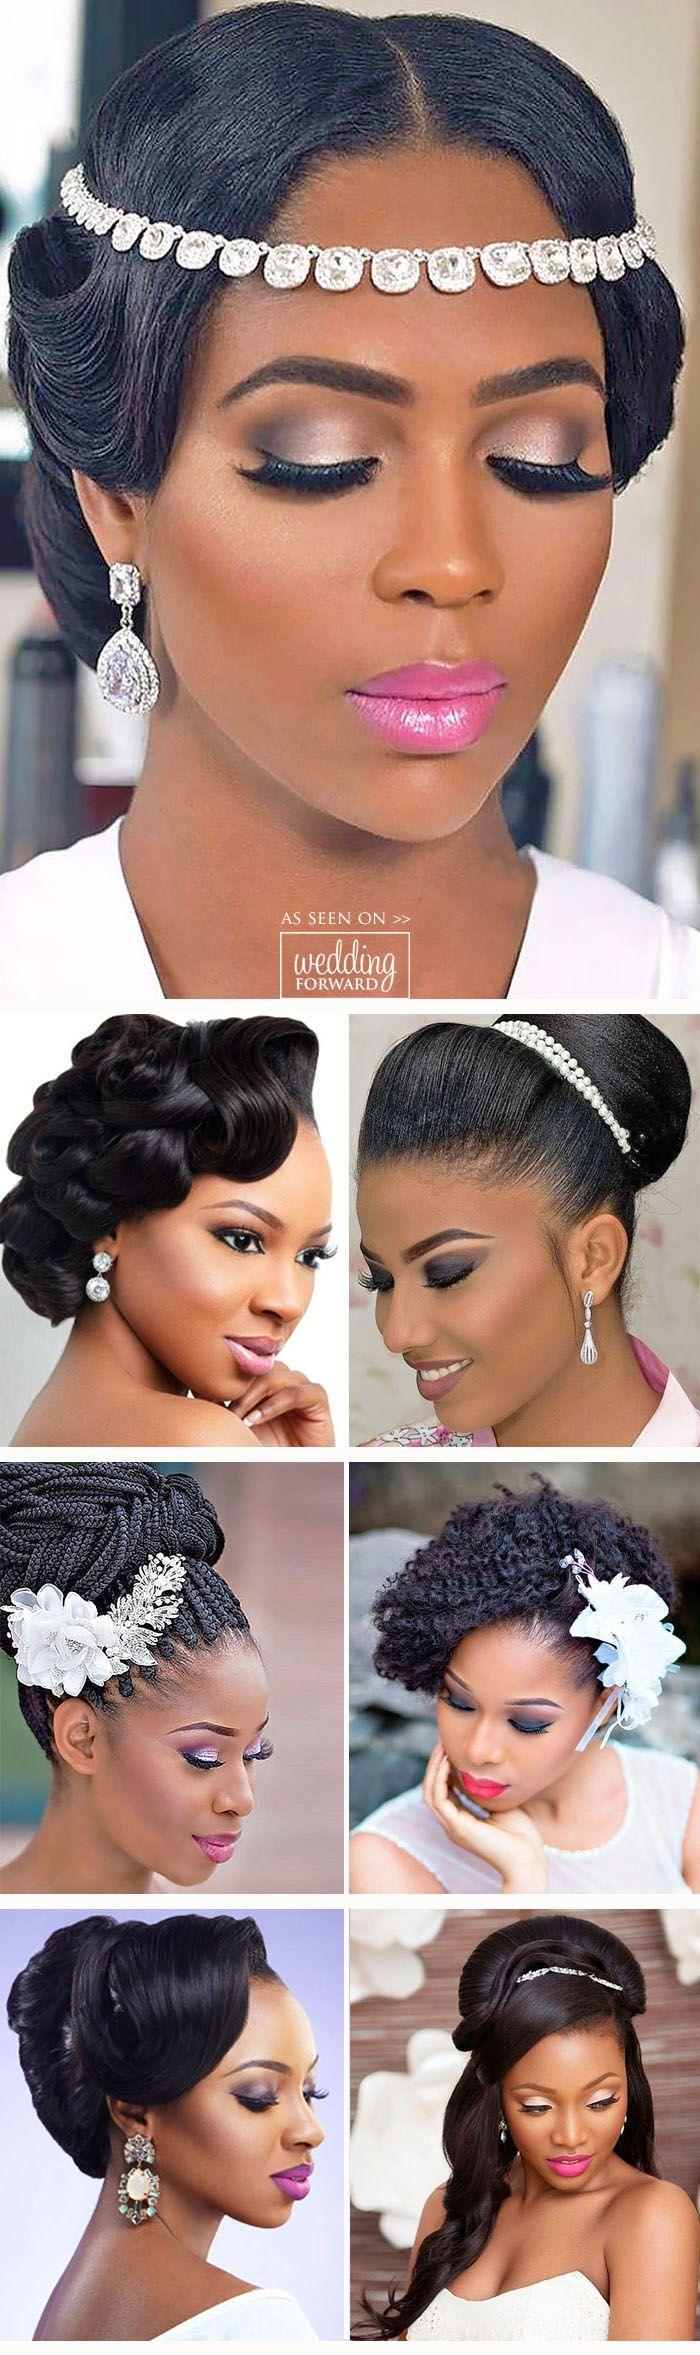 Wedding - 24 Black Women Wedding Hairstyles